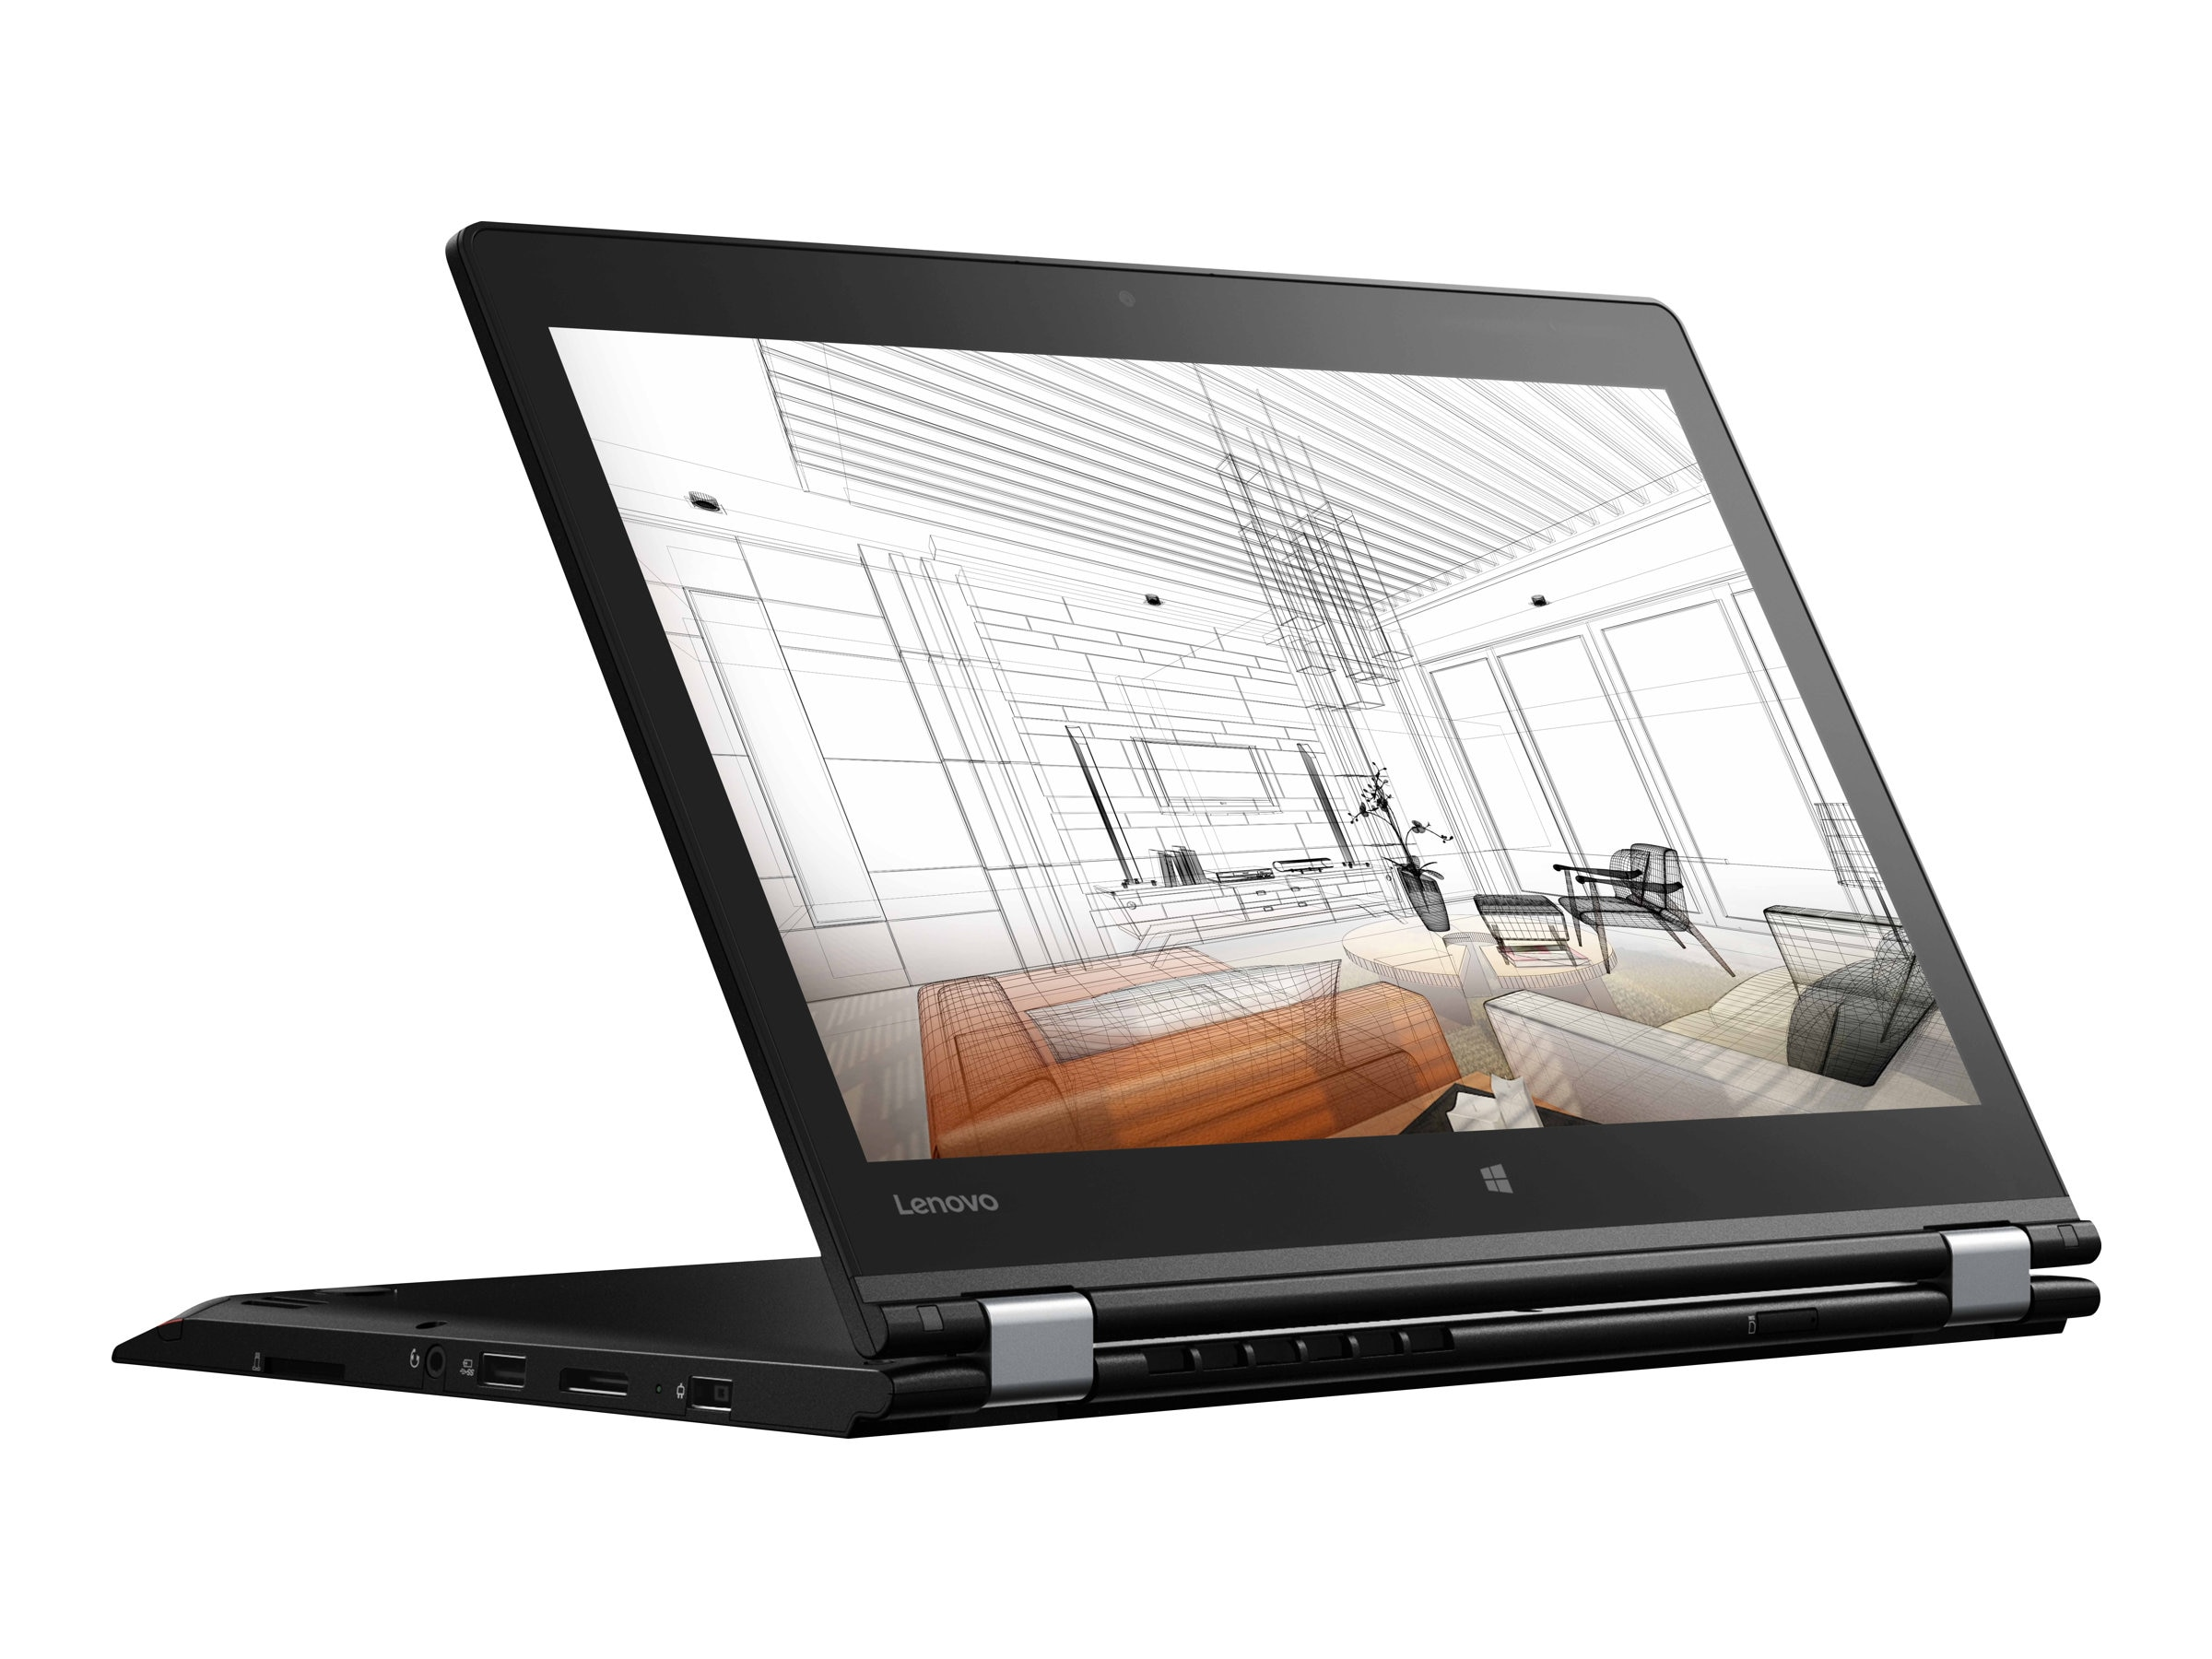 Lenovo TopSeller ThinkPad P40 Yoga Core i7-6600U 2.6GHz 8GB 256GB OPAL2 ac BT FR WC Pen 14 FHD MT W10P64, 20GQ000CUS